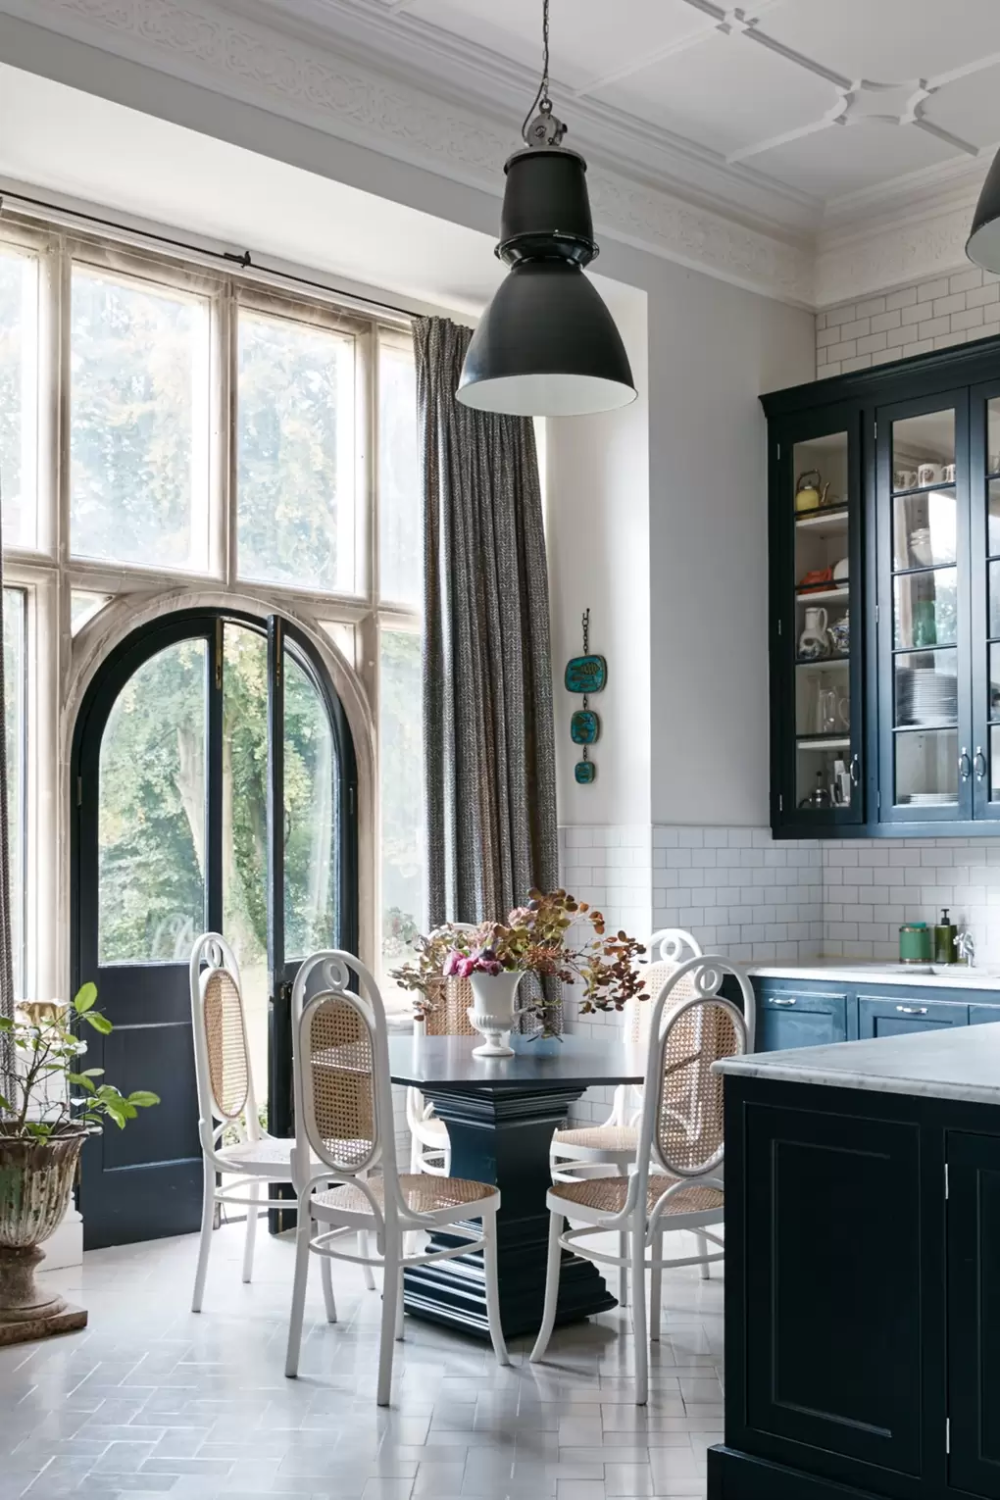 Echoes of old Hollywood glamour in the grand Victorian